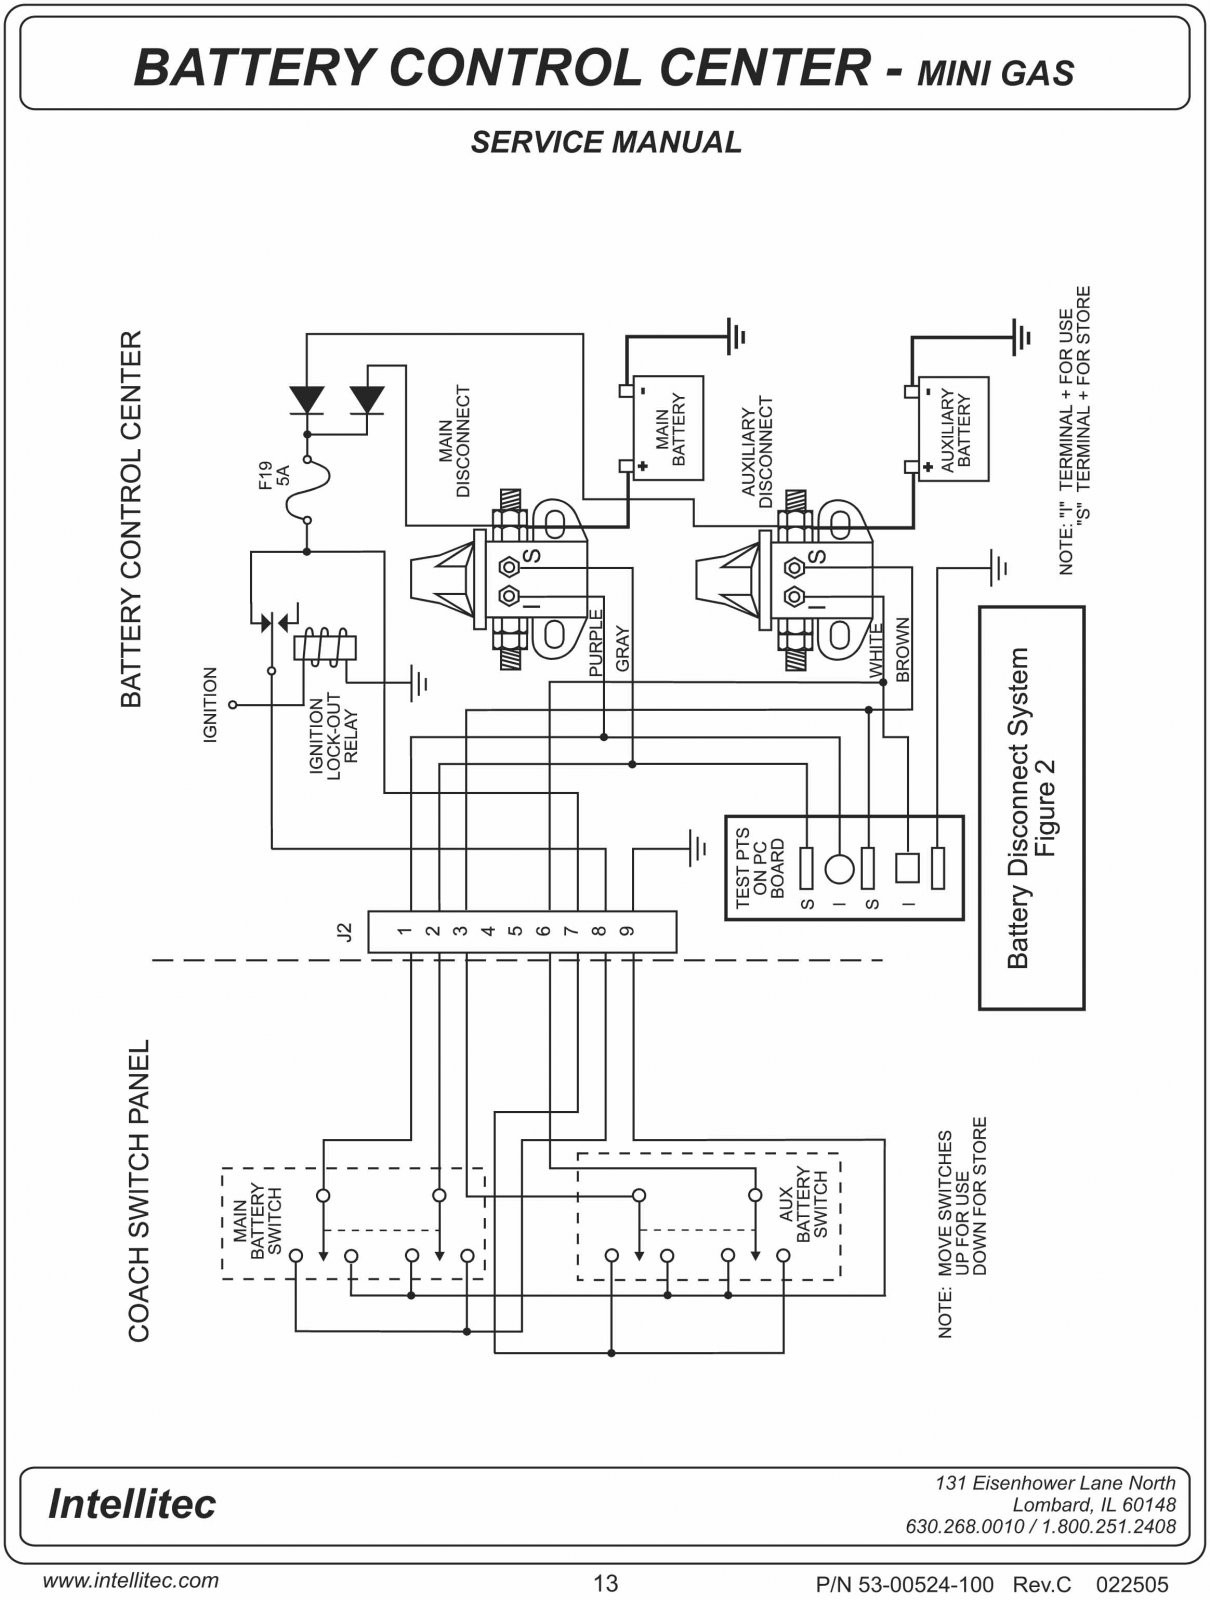 rv step wiring diagram 11 gesundheitspraxis muelhoff de \u2022 Temporary Electrical Service Diagram kwikee rv step wiring diagram wiring diagram rh 53 ansolsolder co rv electric step wiring diagram rv parts steps